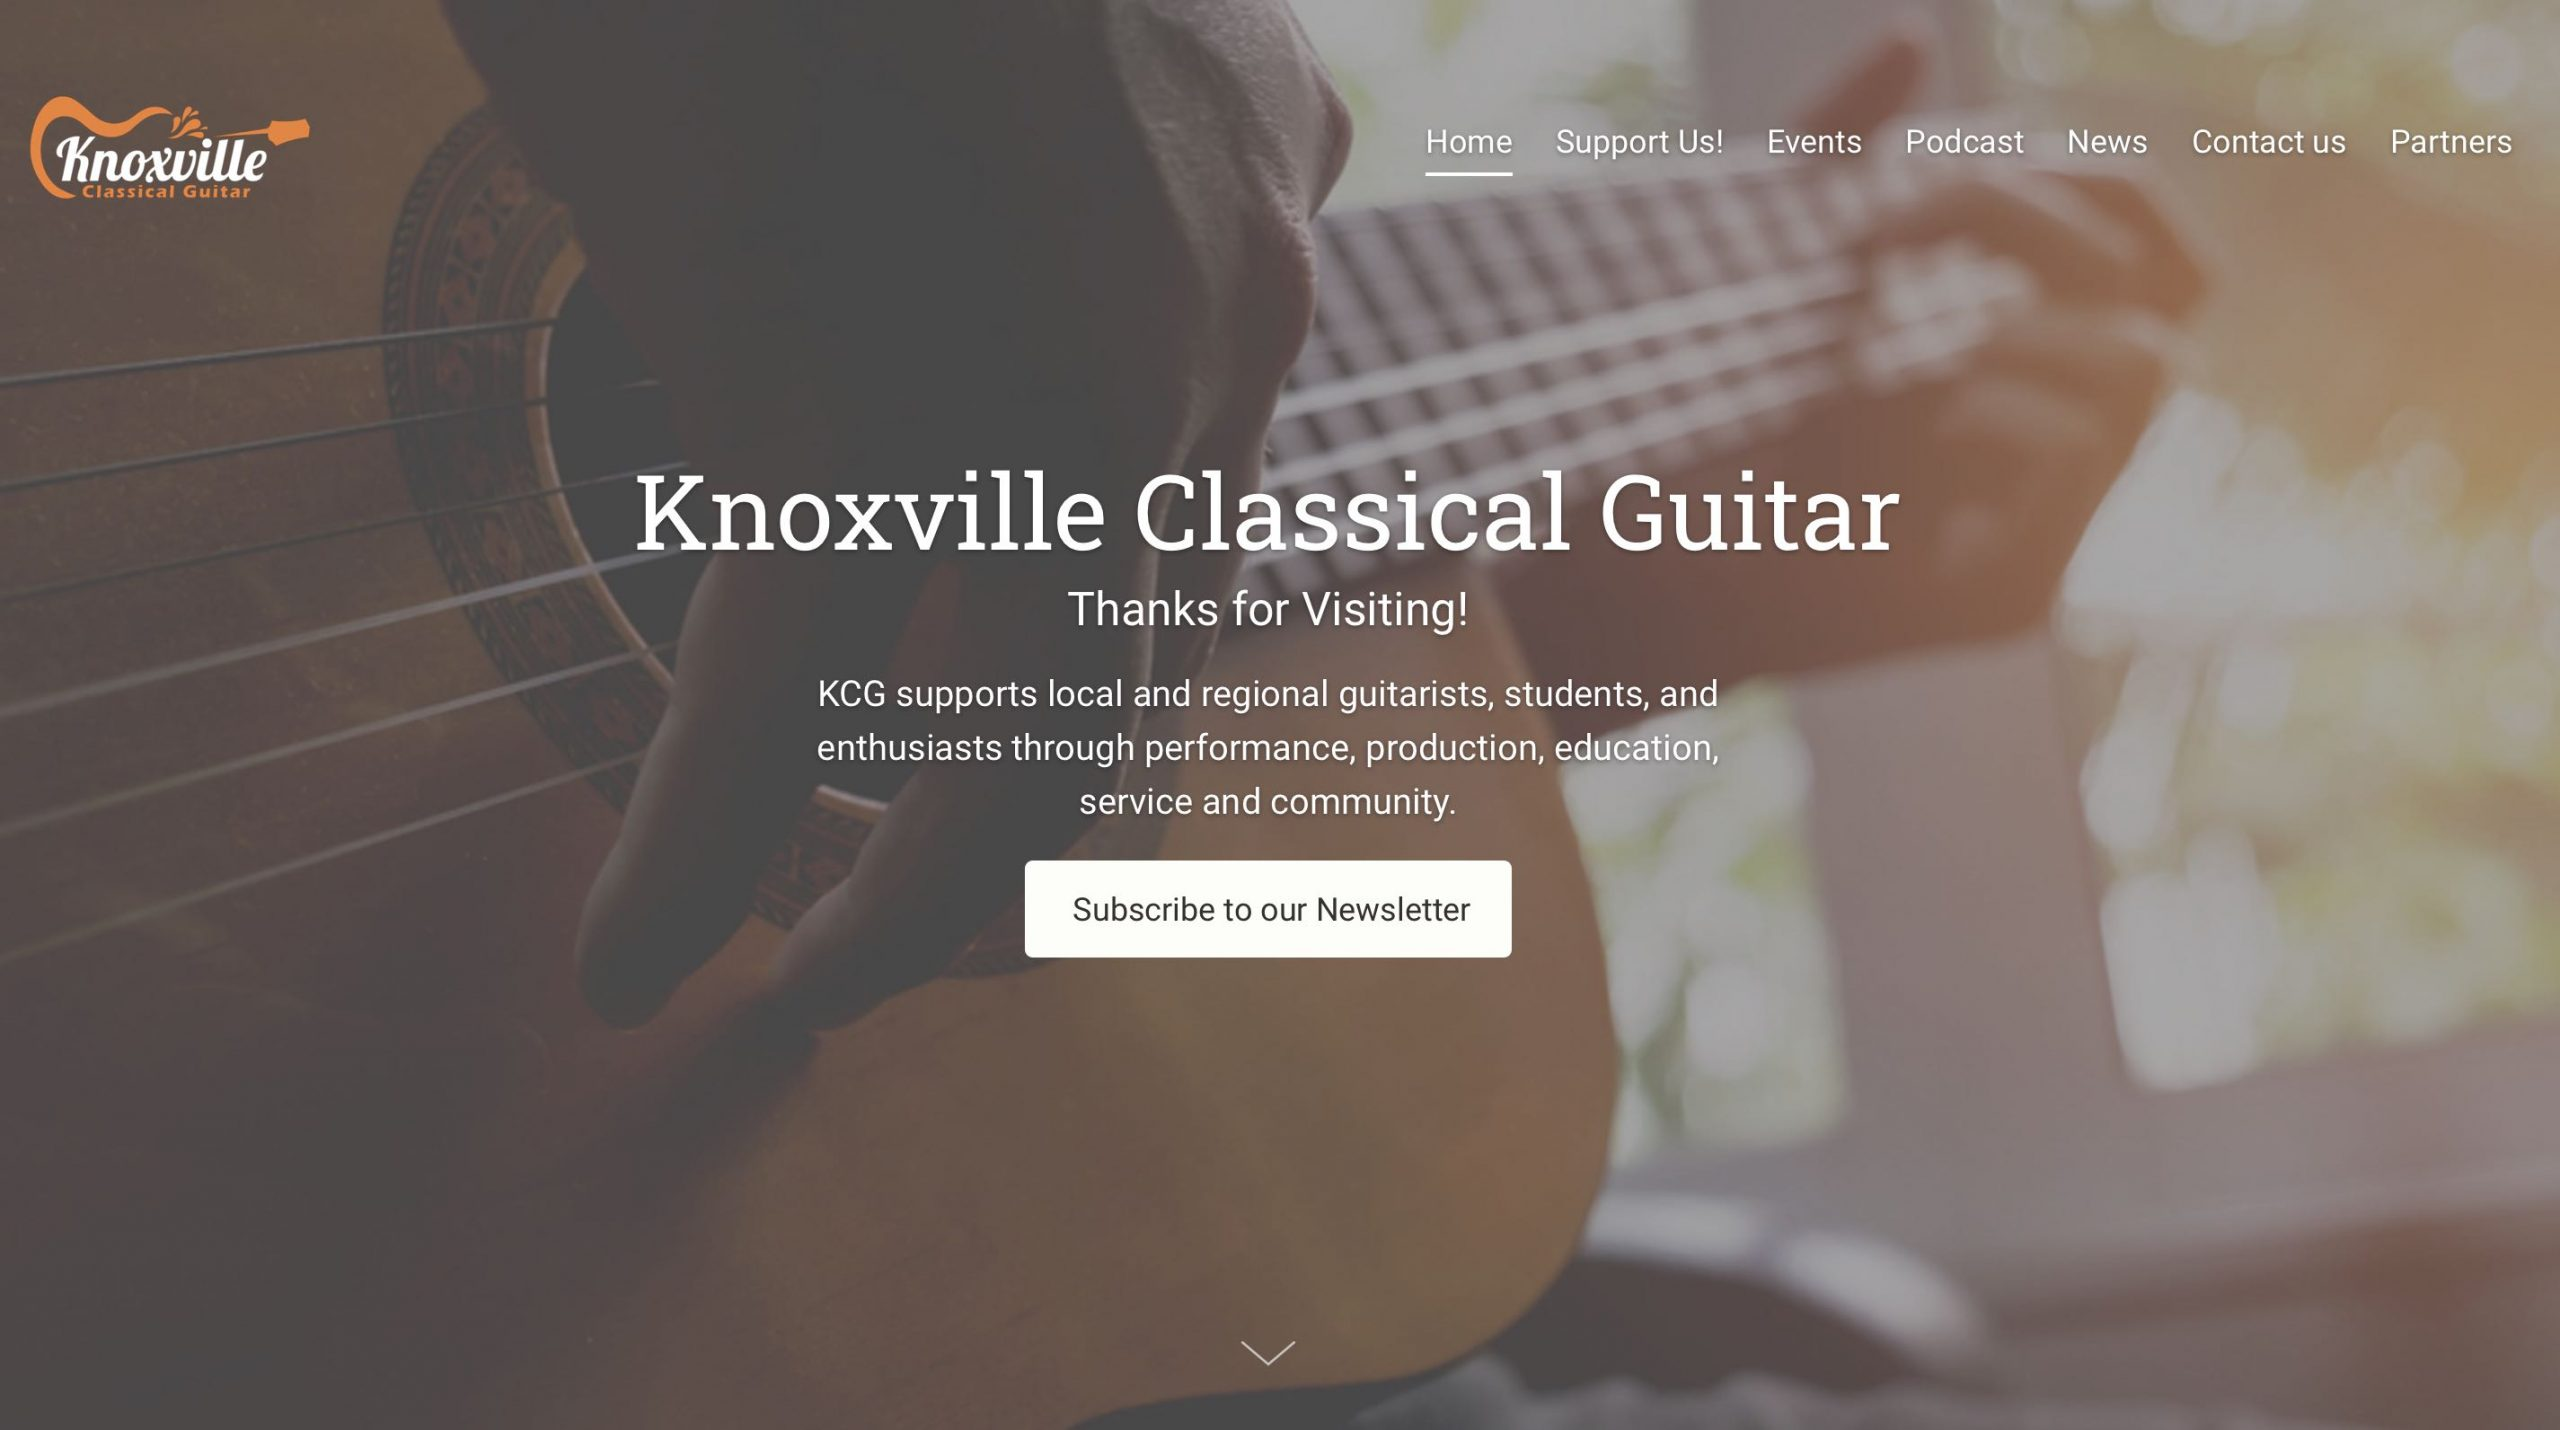 Knoxville Classical Guitar